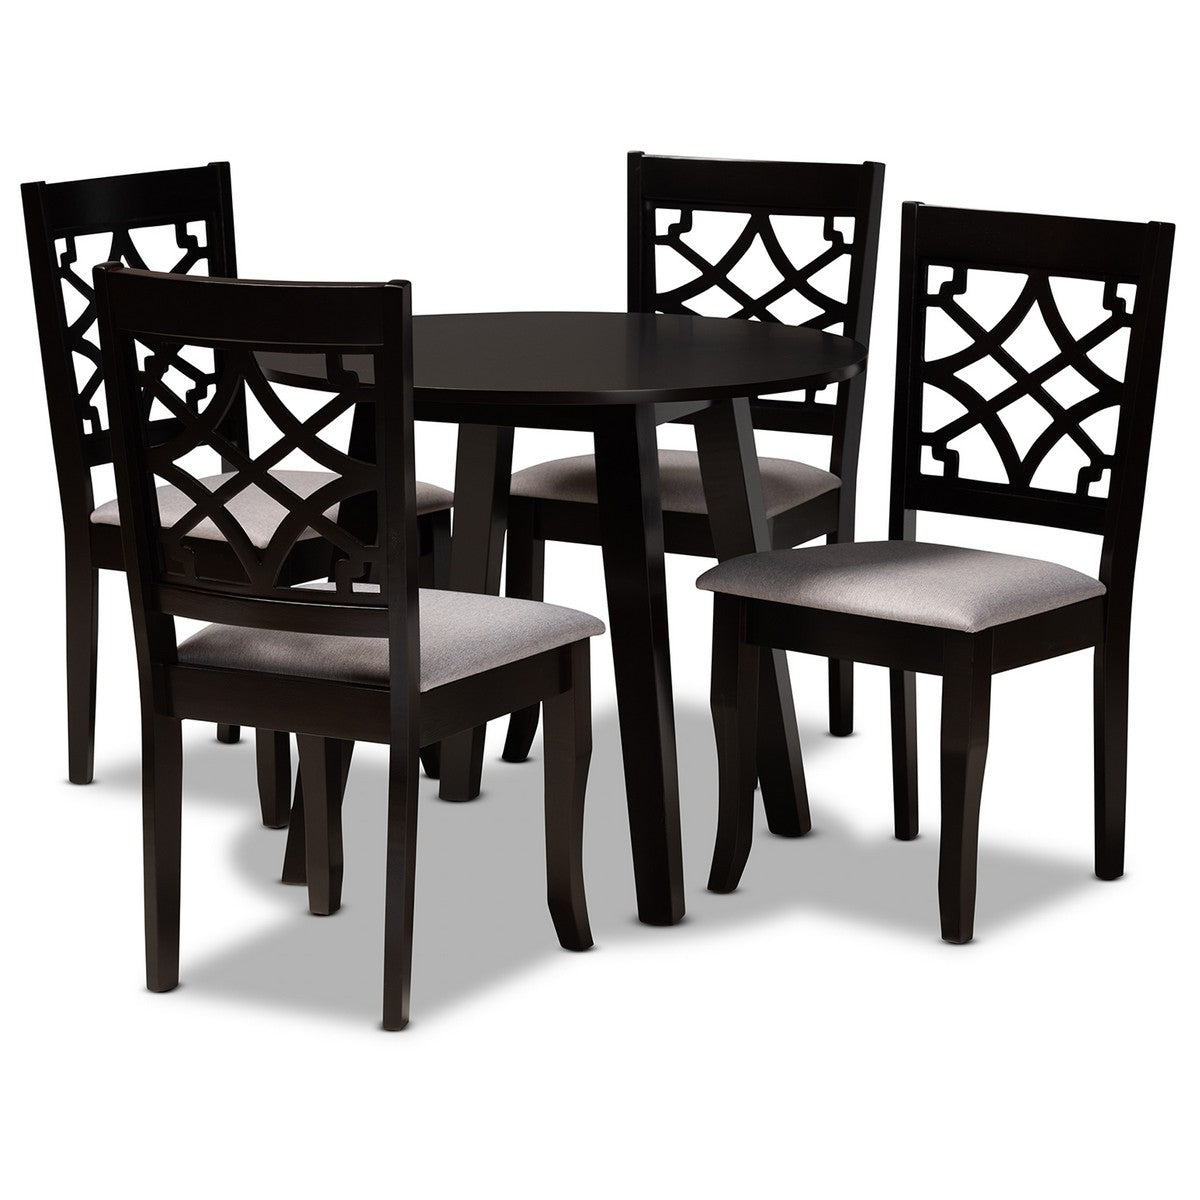 Baxton Studio Mya Modern and Contemporary Grey Fabric Upholstered and Dark Brown Finished Wood 5-Piece Dining Set Baxton Studio-Dining Sets-Minimal And Modern - 1